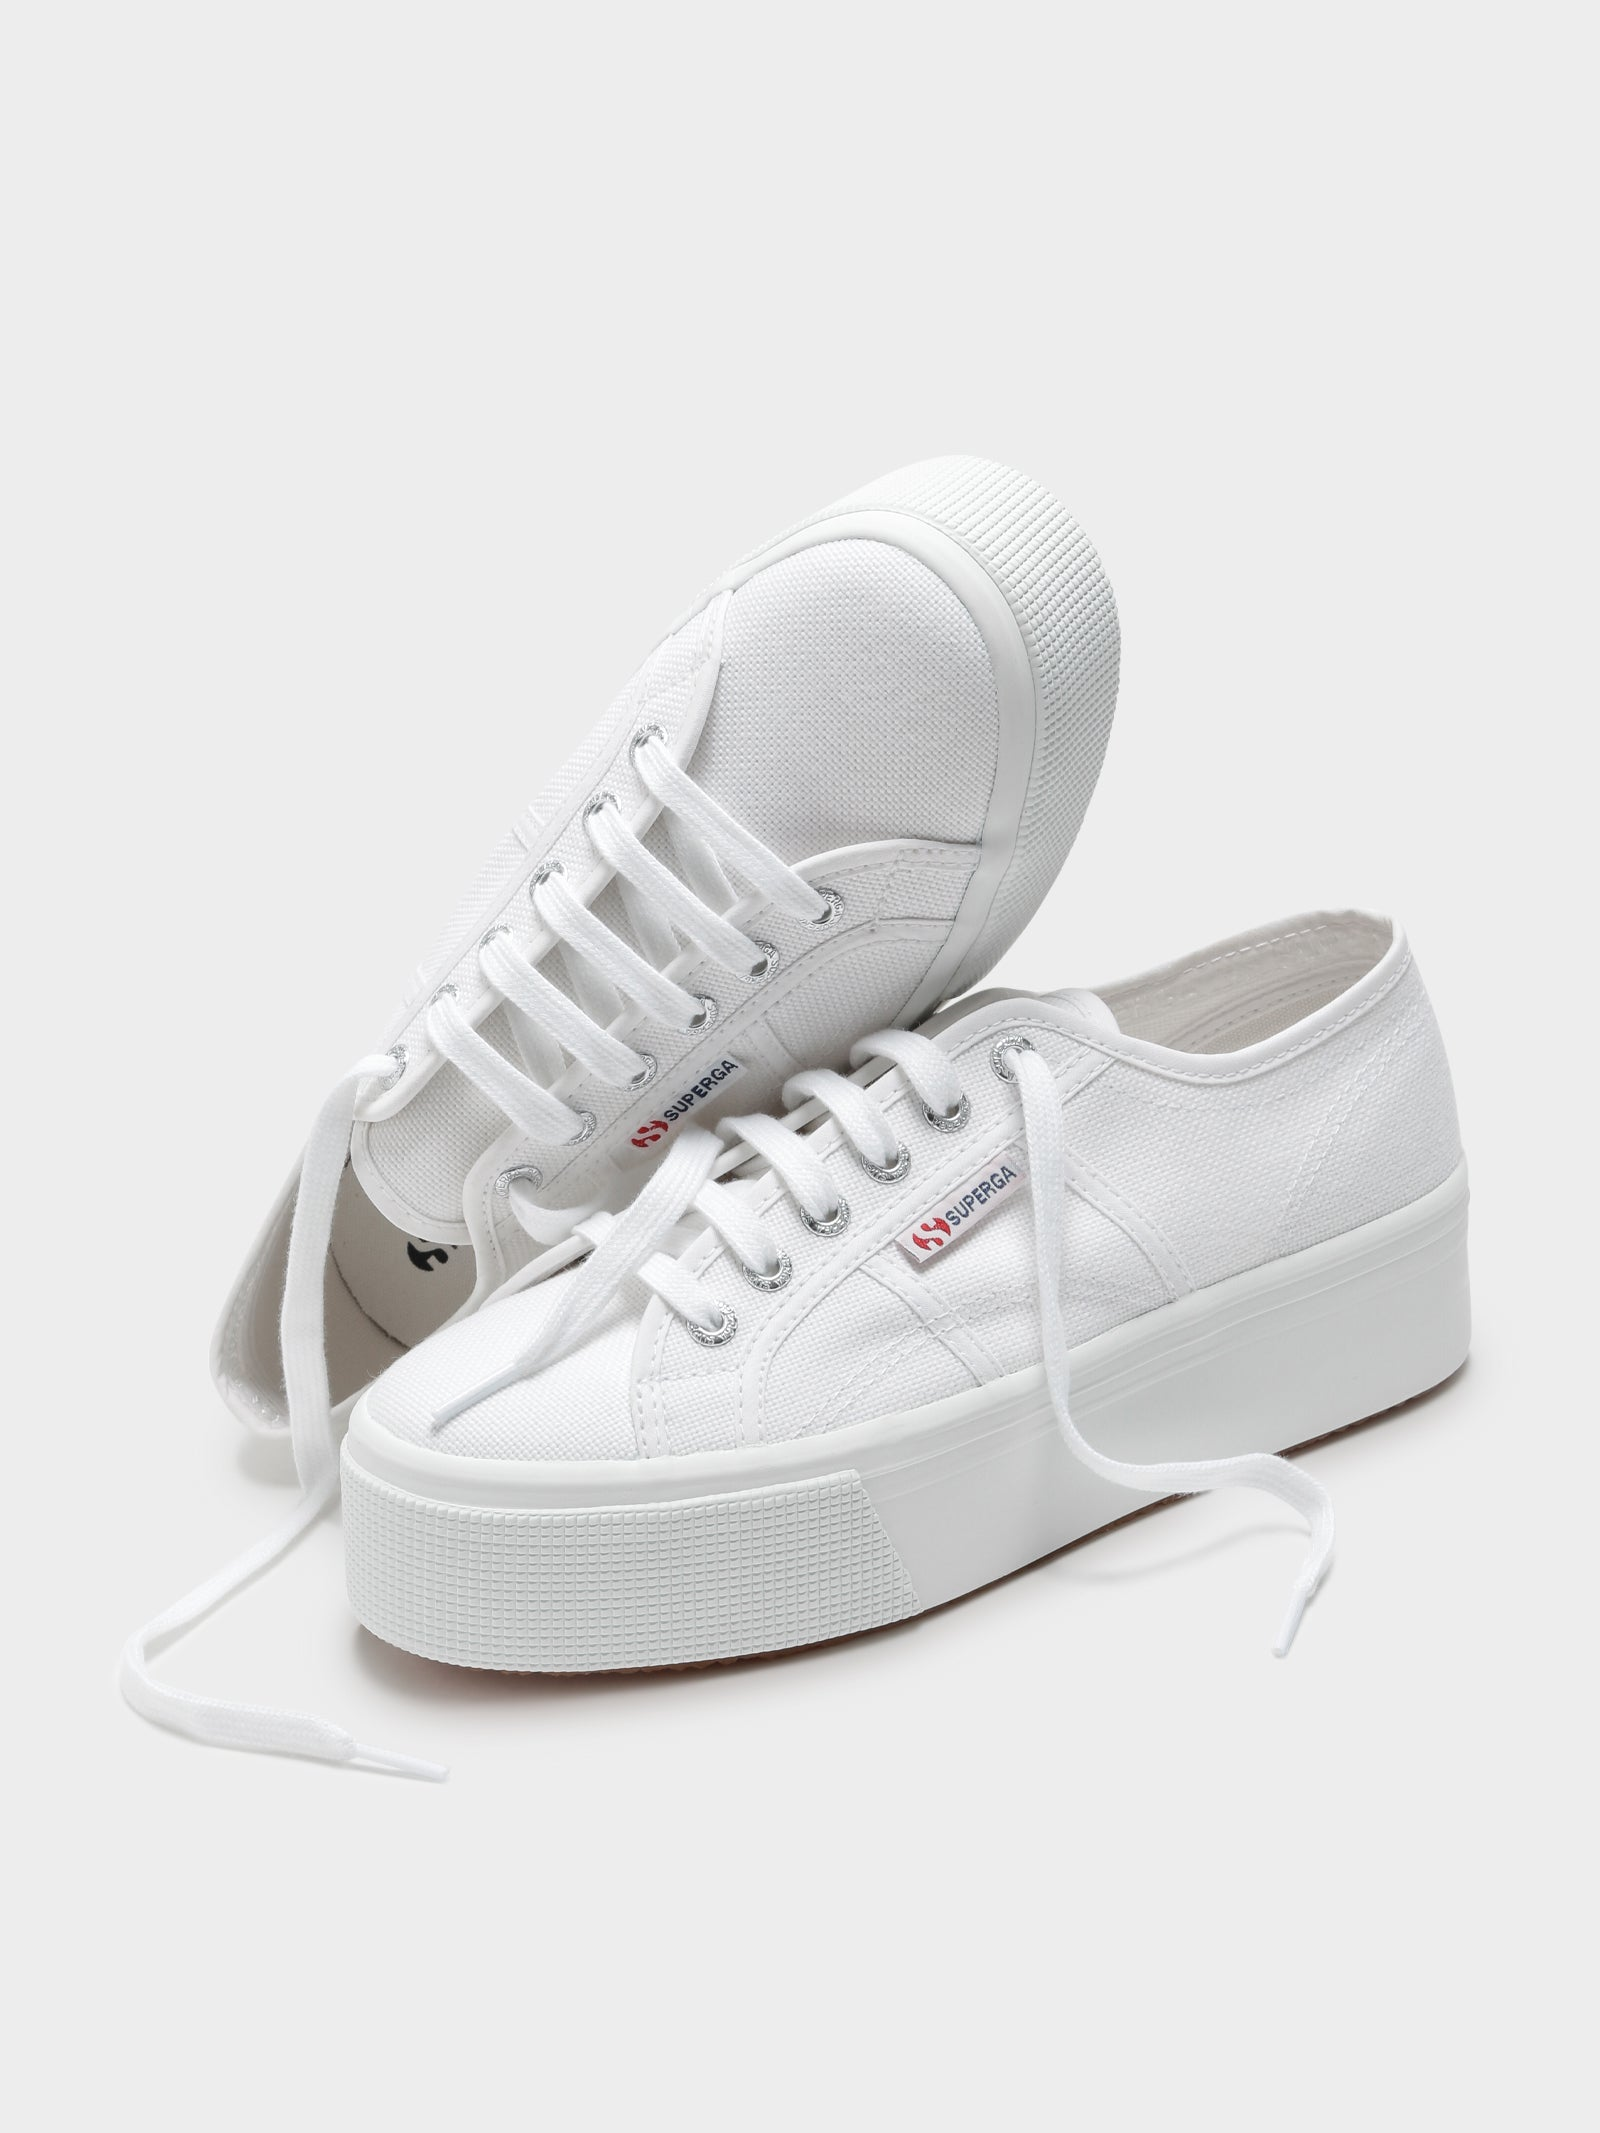 Womens 2790 Linea Up and Down Platform Sneakers in White